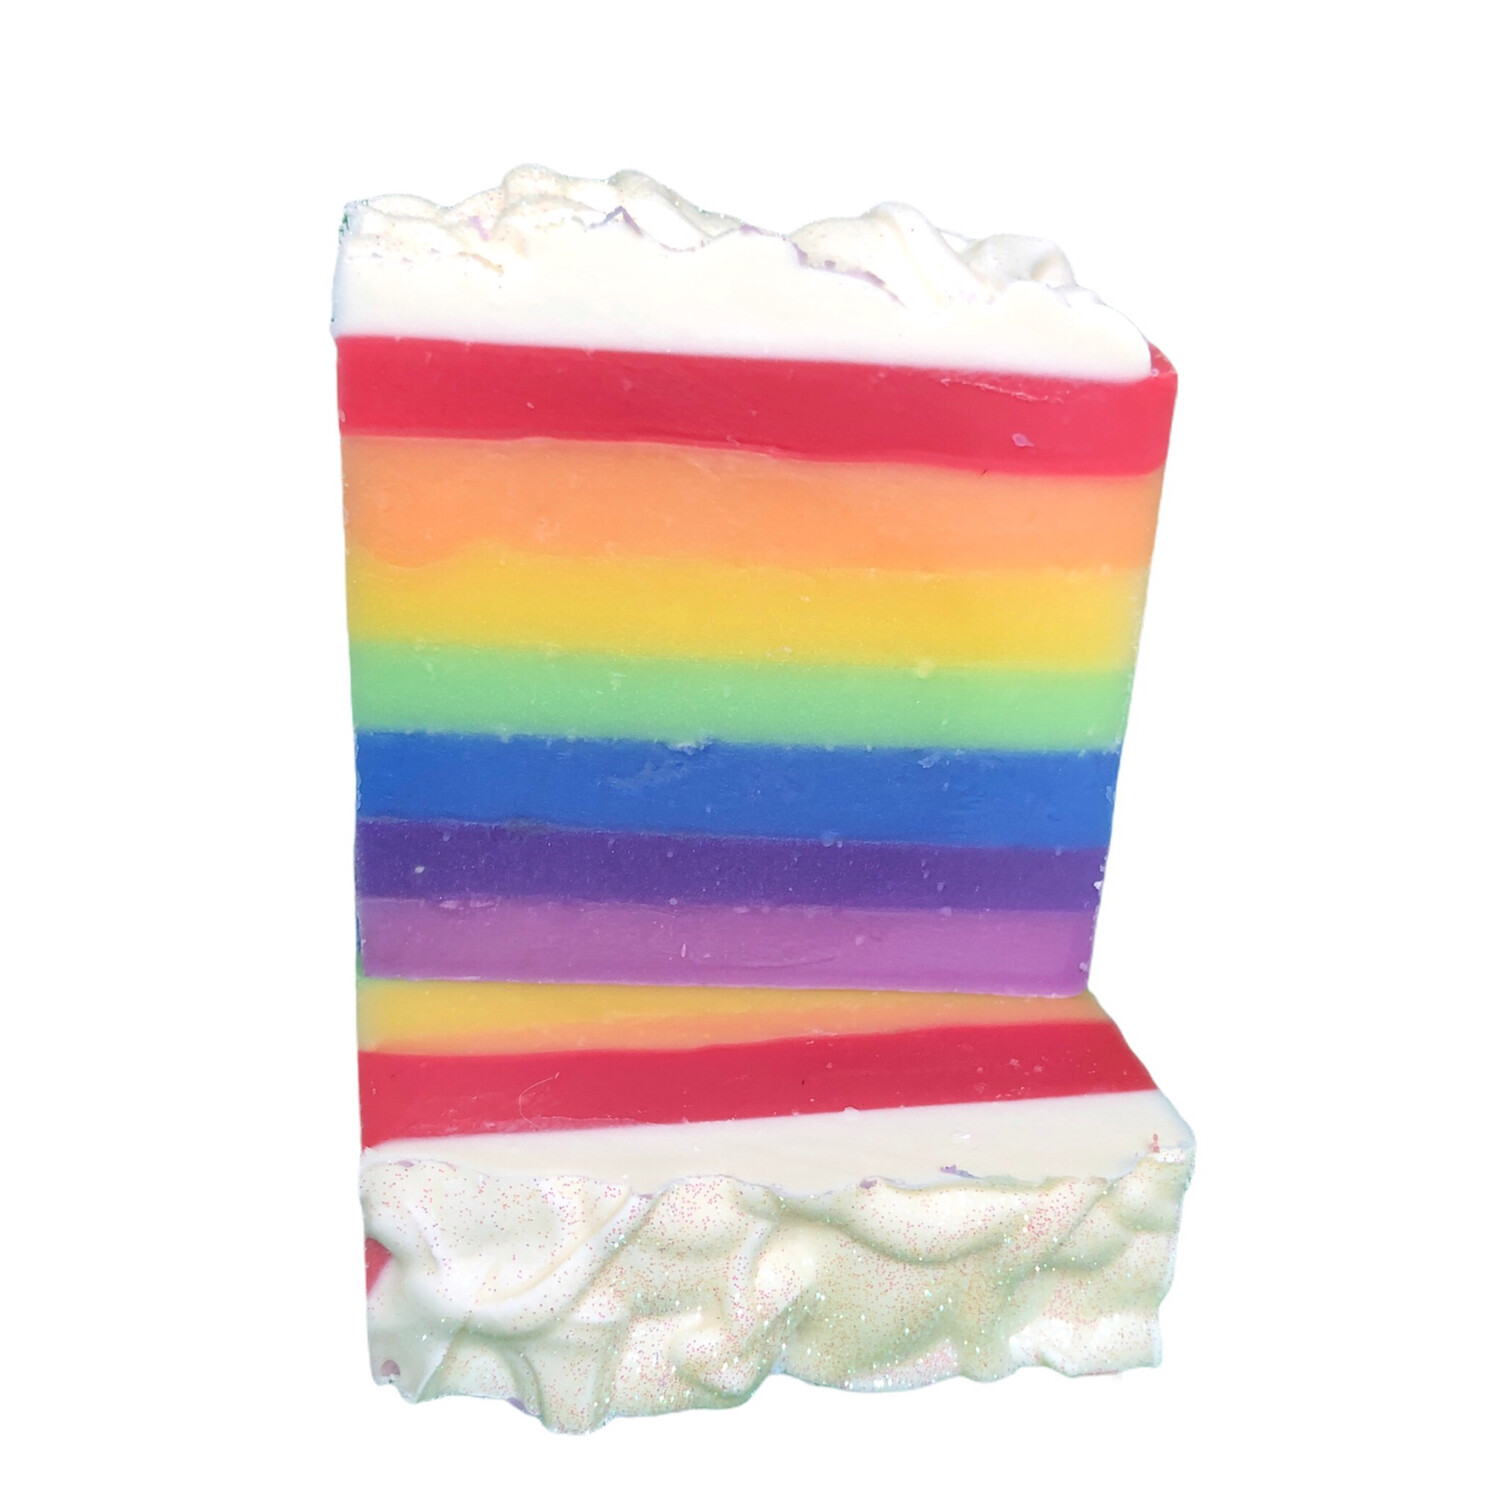 Chase the Rainbow Soap